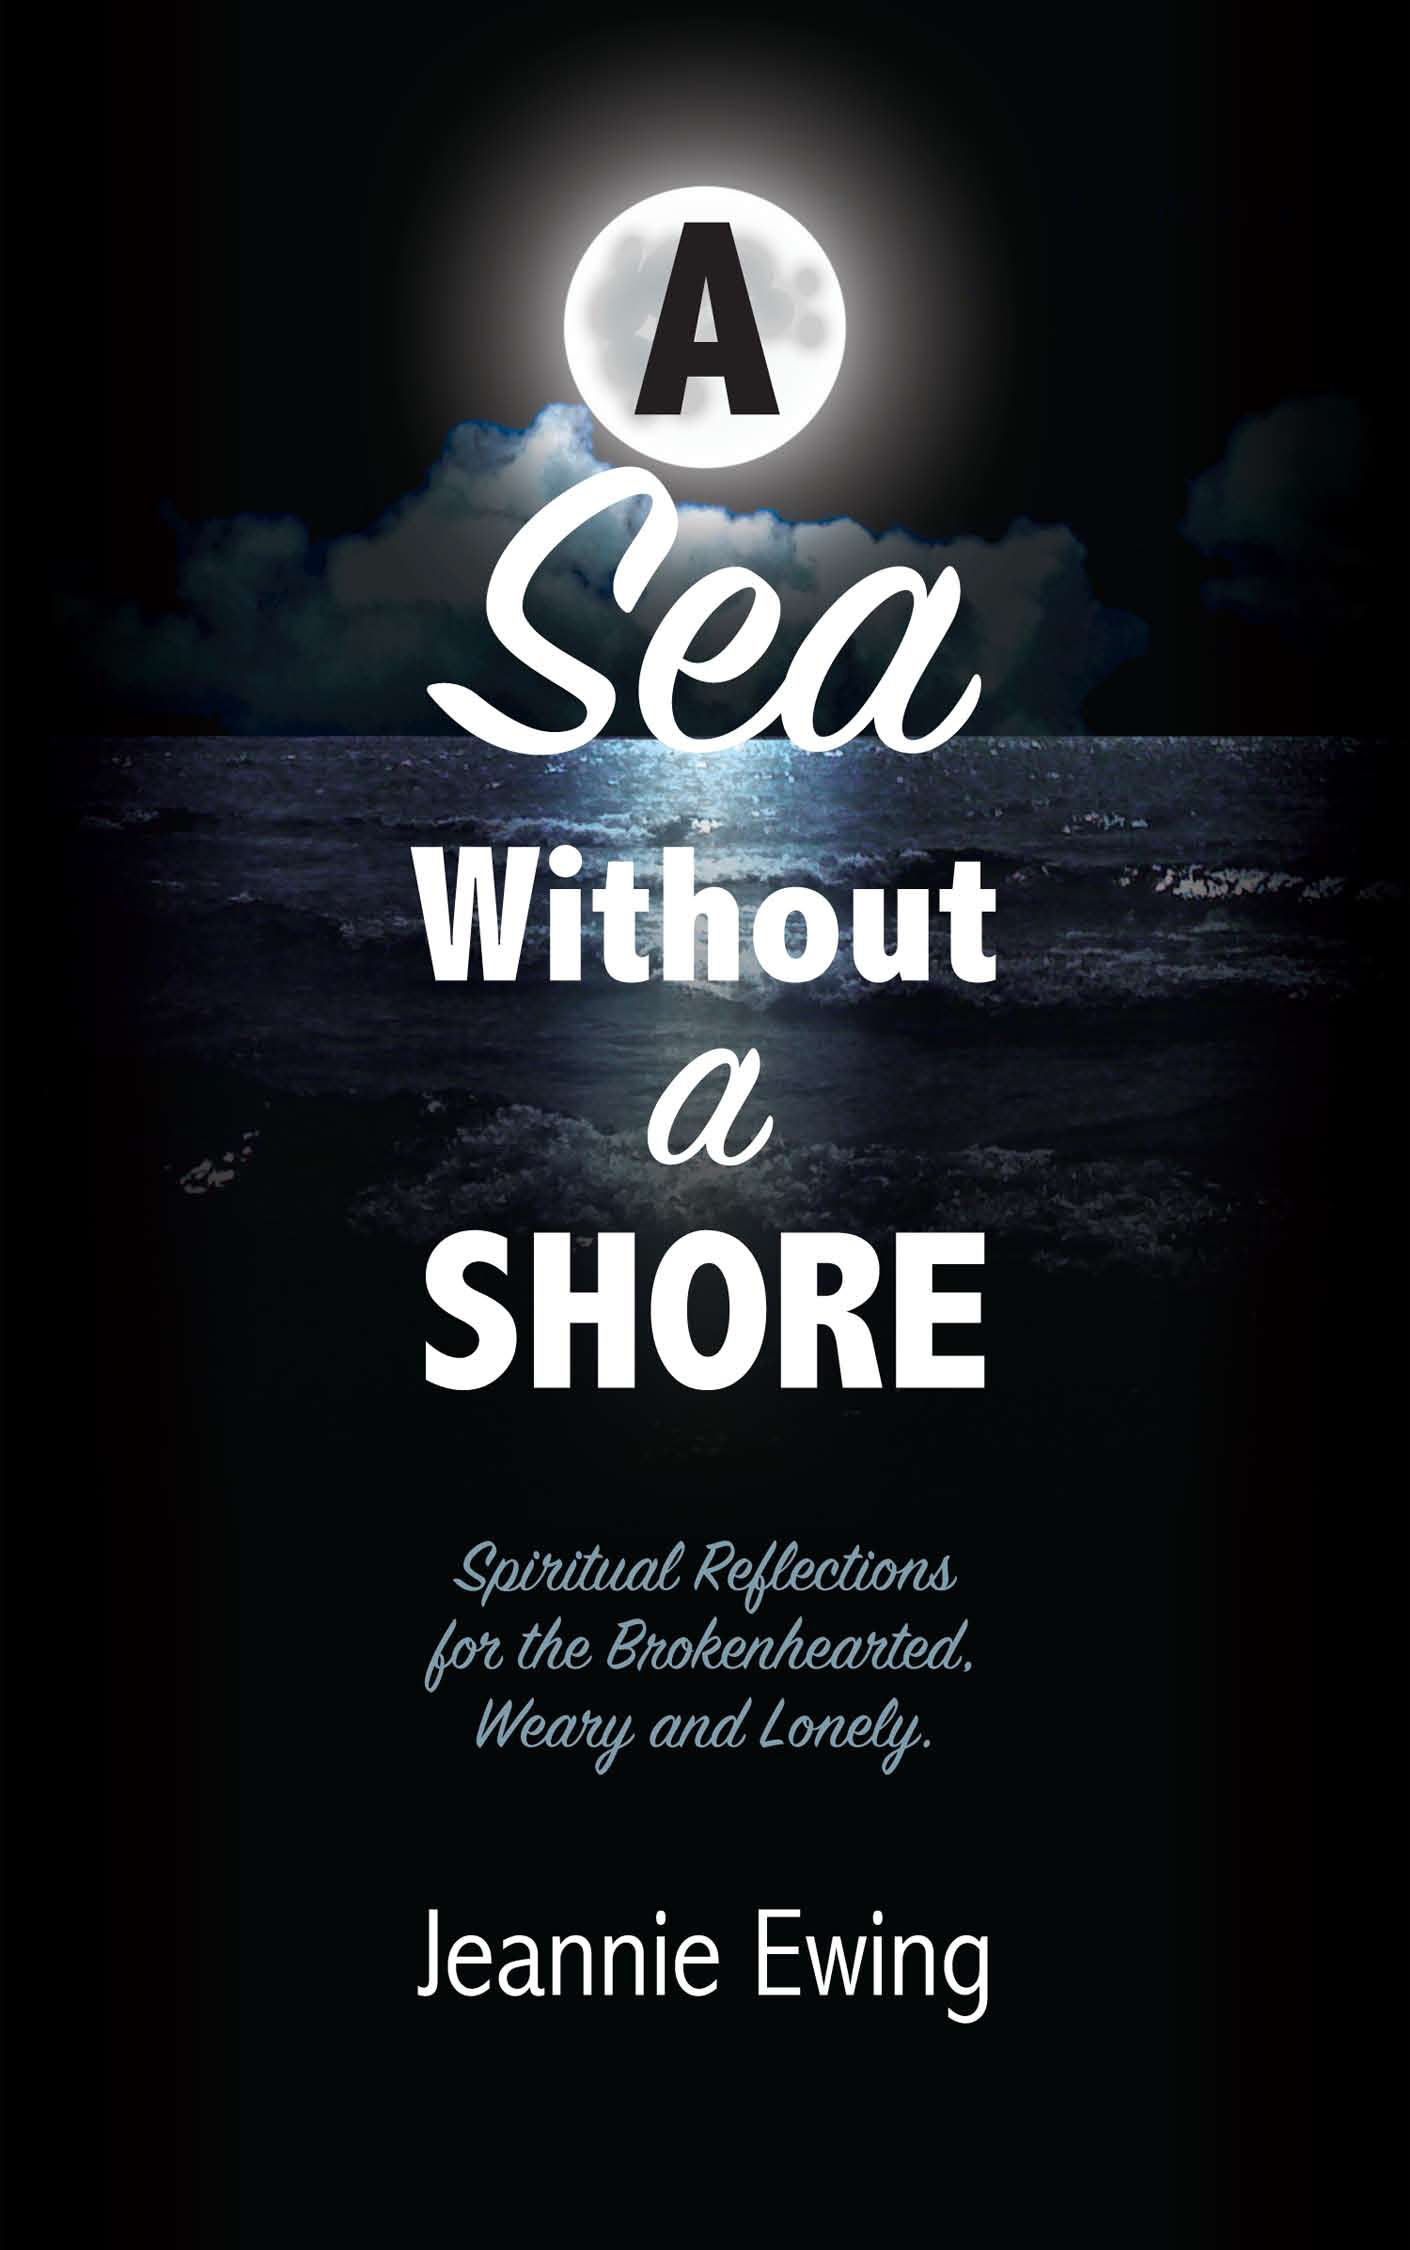 A Sea Without A Shore: Spiritual Reflections for the Brokenhearted, Weary, and Lonely 0000003